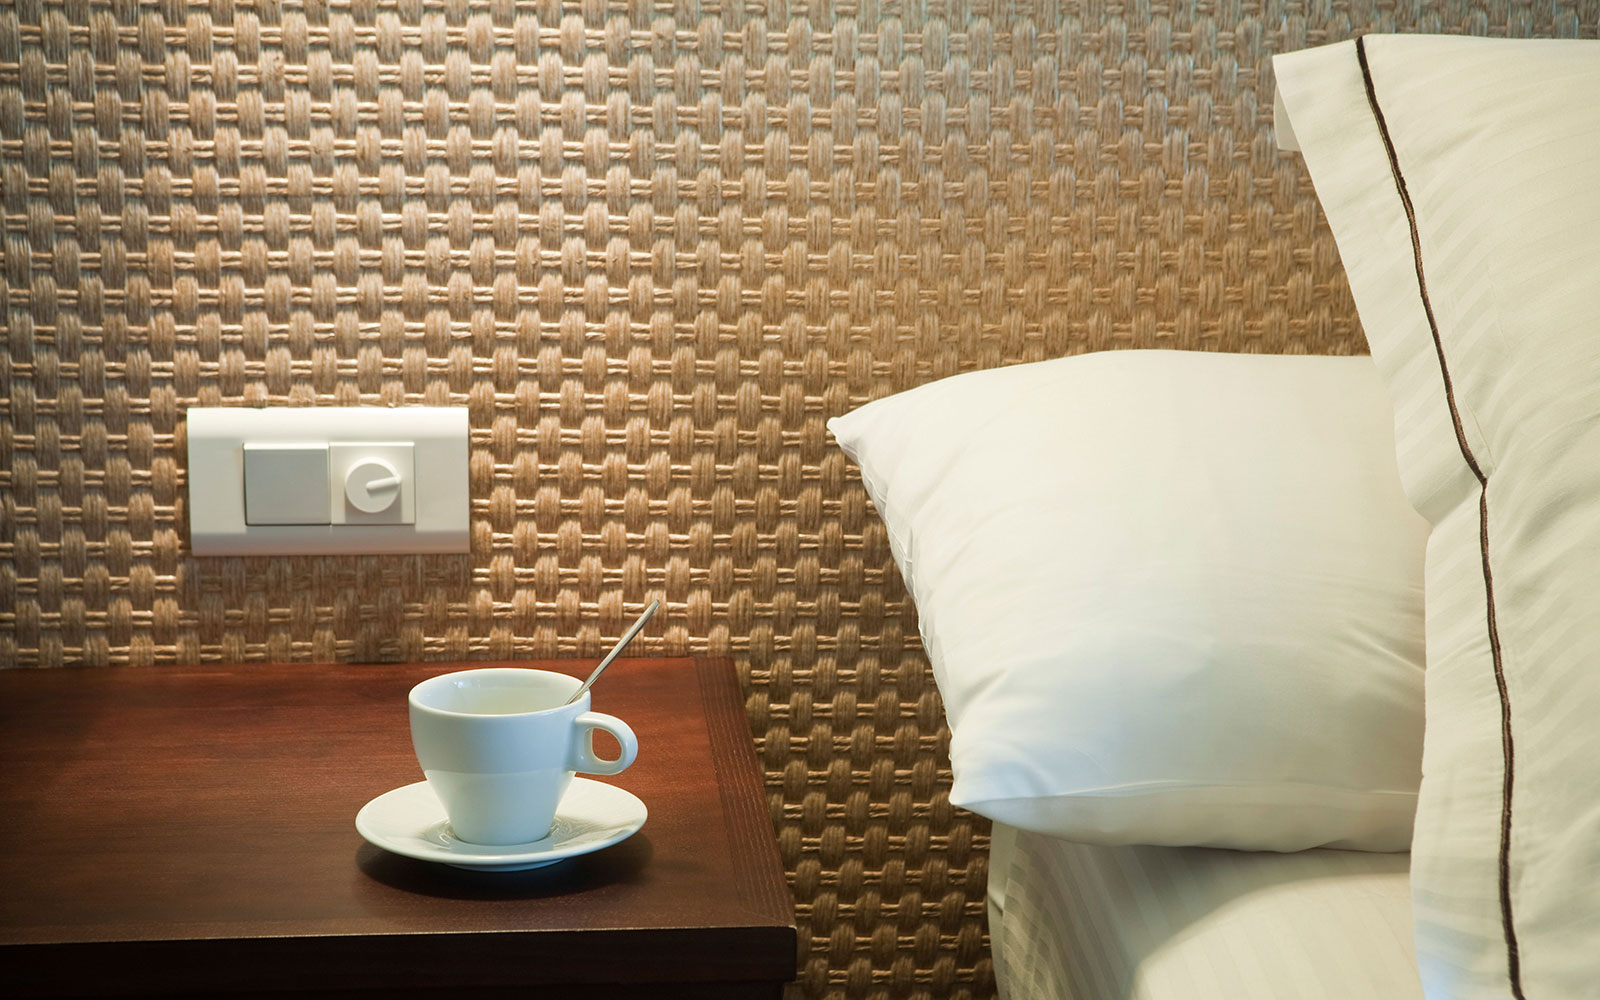 11 Amazing Things Found in the Hotel Room of the Future: Smart appliances